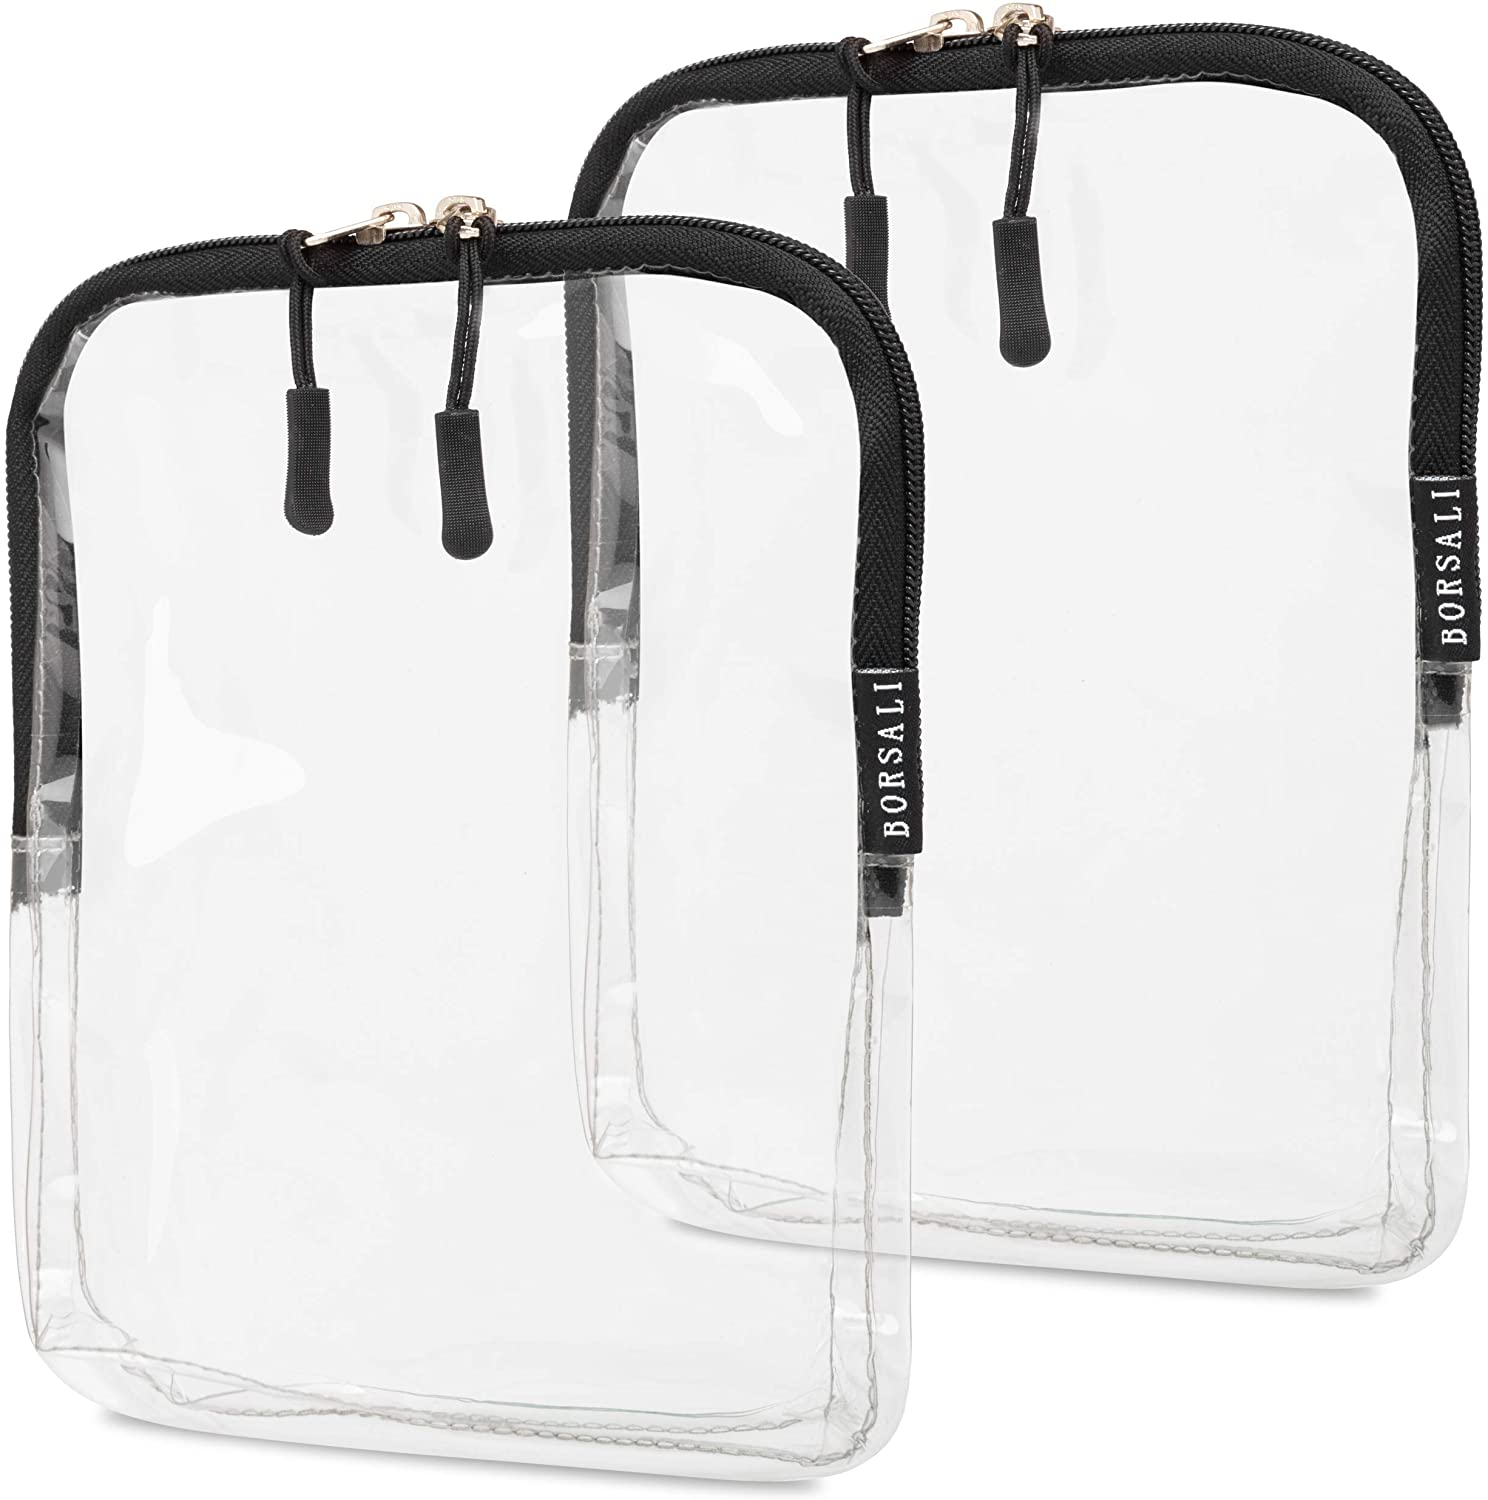 TSA Approved Toiletry Bag - Clear Cosmetic & Travel Toiletries Organizer - Quart Size for 3-1-1 Liquids & Other Personal Items - For Luggage, Purse or Car, Carry Face Coverings, Lotion & More - 2 Pack